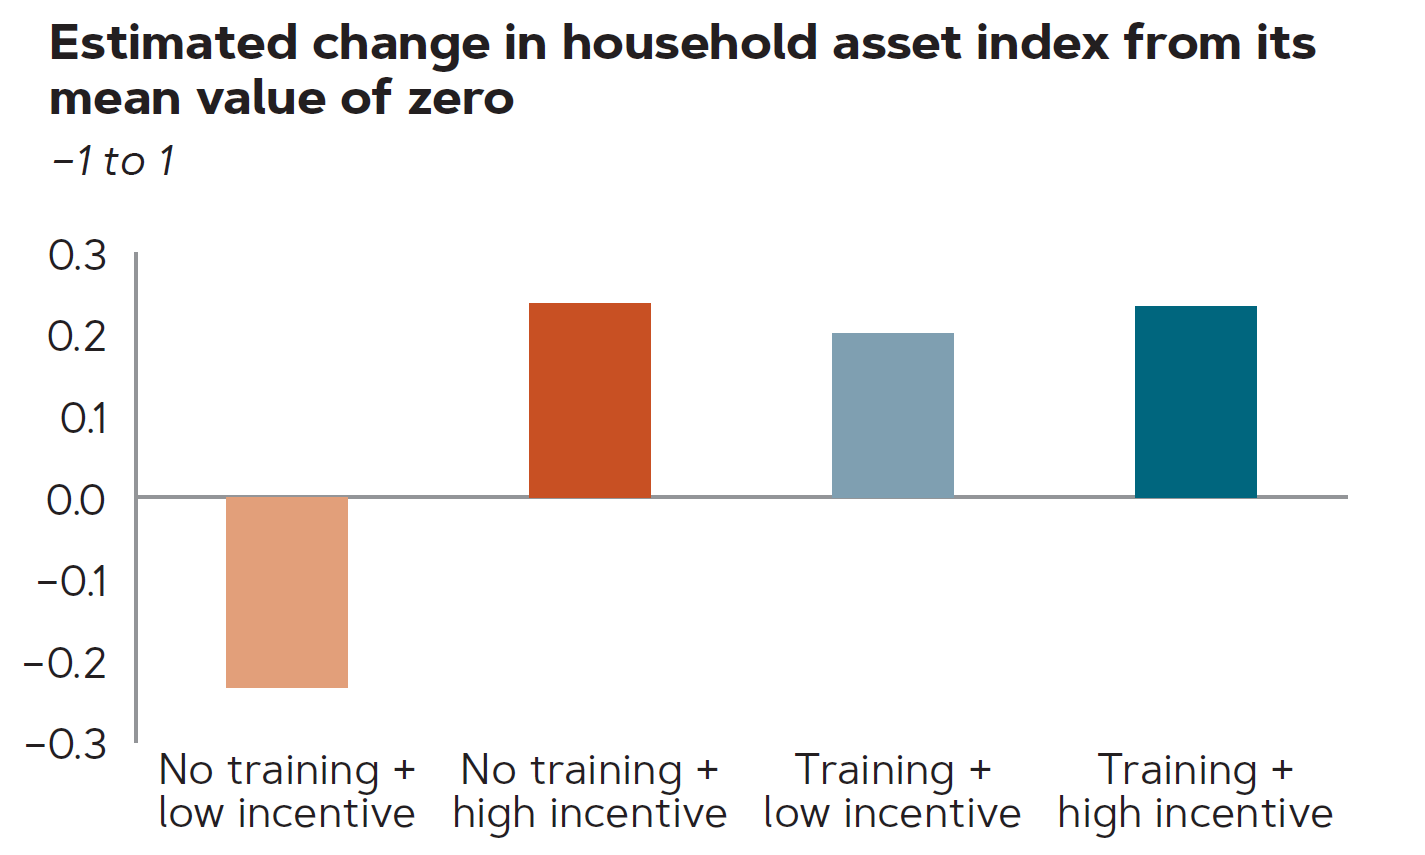 Graph of estimated change in household asset index from its mean value of zero